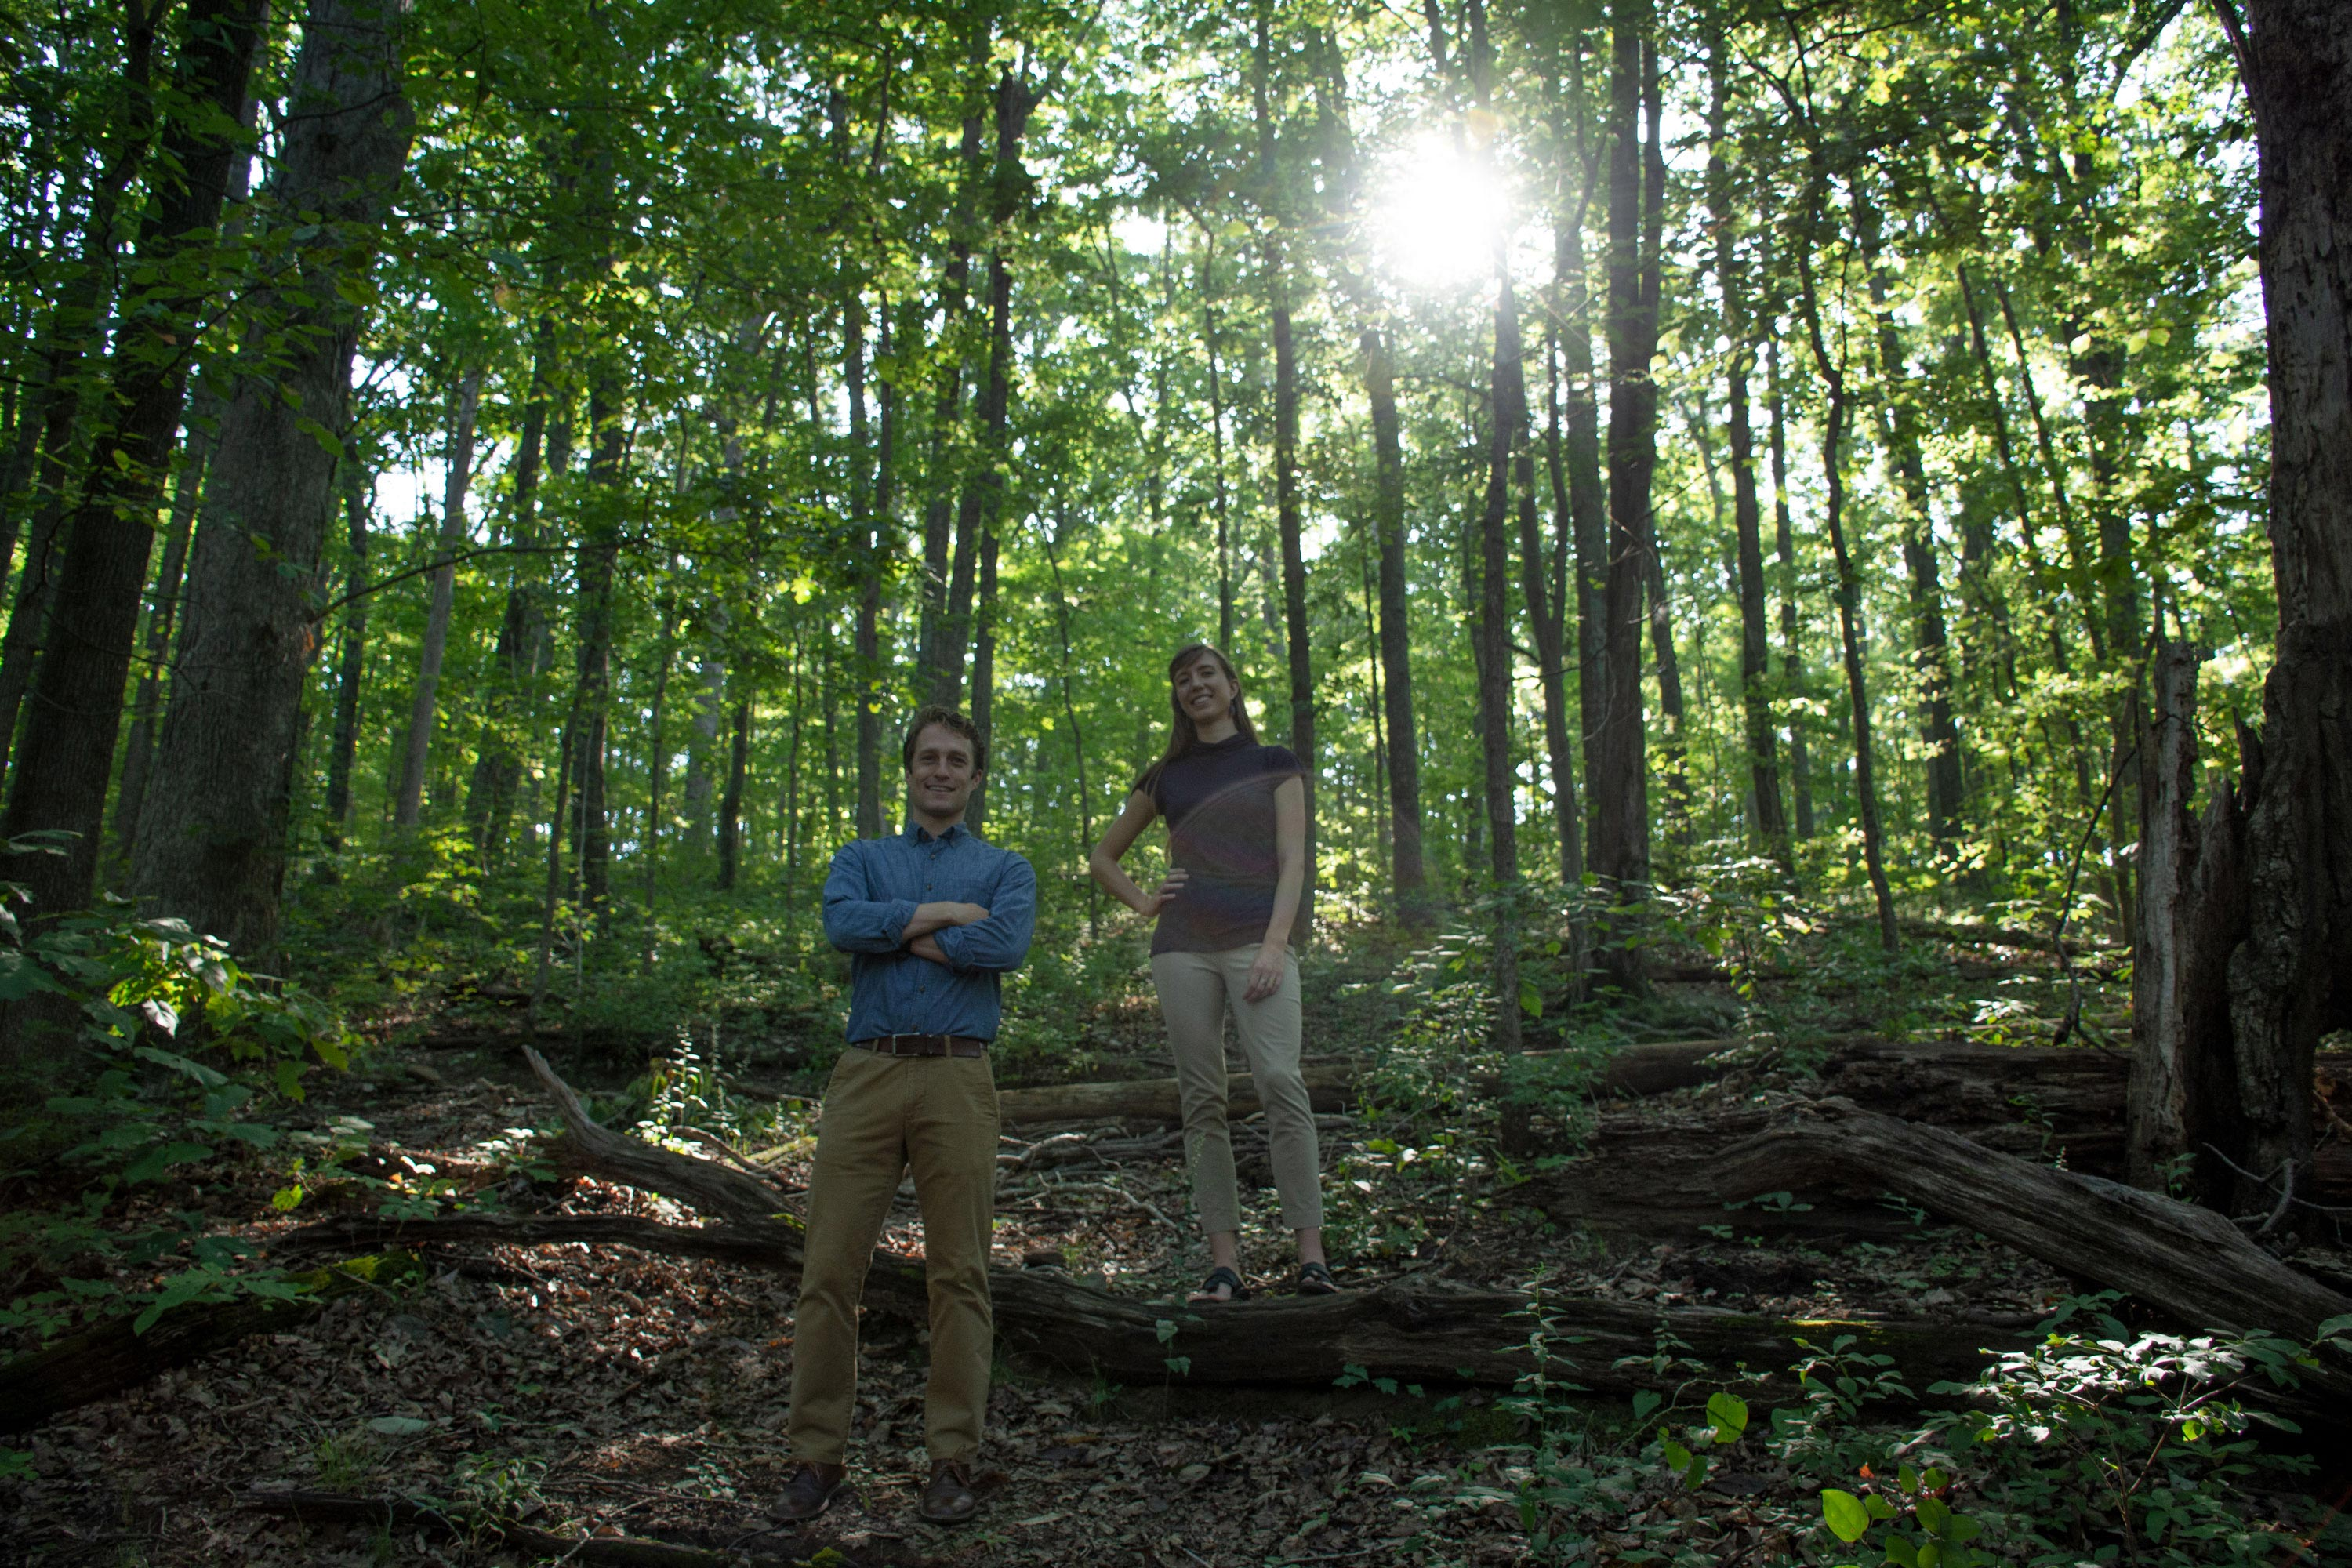 UVA doctoral students Jake Malcomb and Linnea Saby plan to study the effects of climate change in Shenandoah National Park with help from the International Space Station. (Photo by Cody Huff, DSI Multimedia Producer)